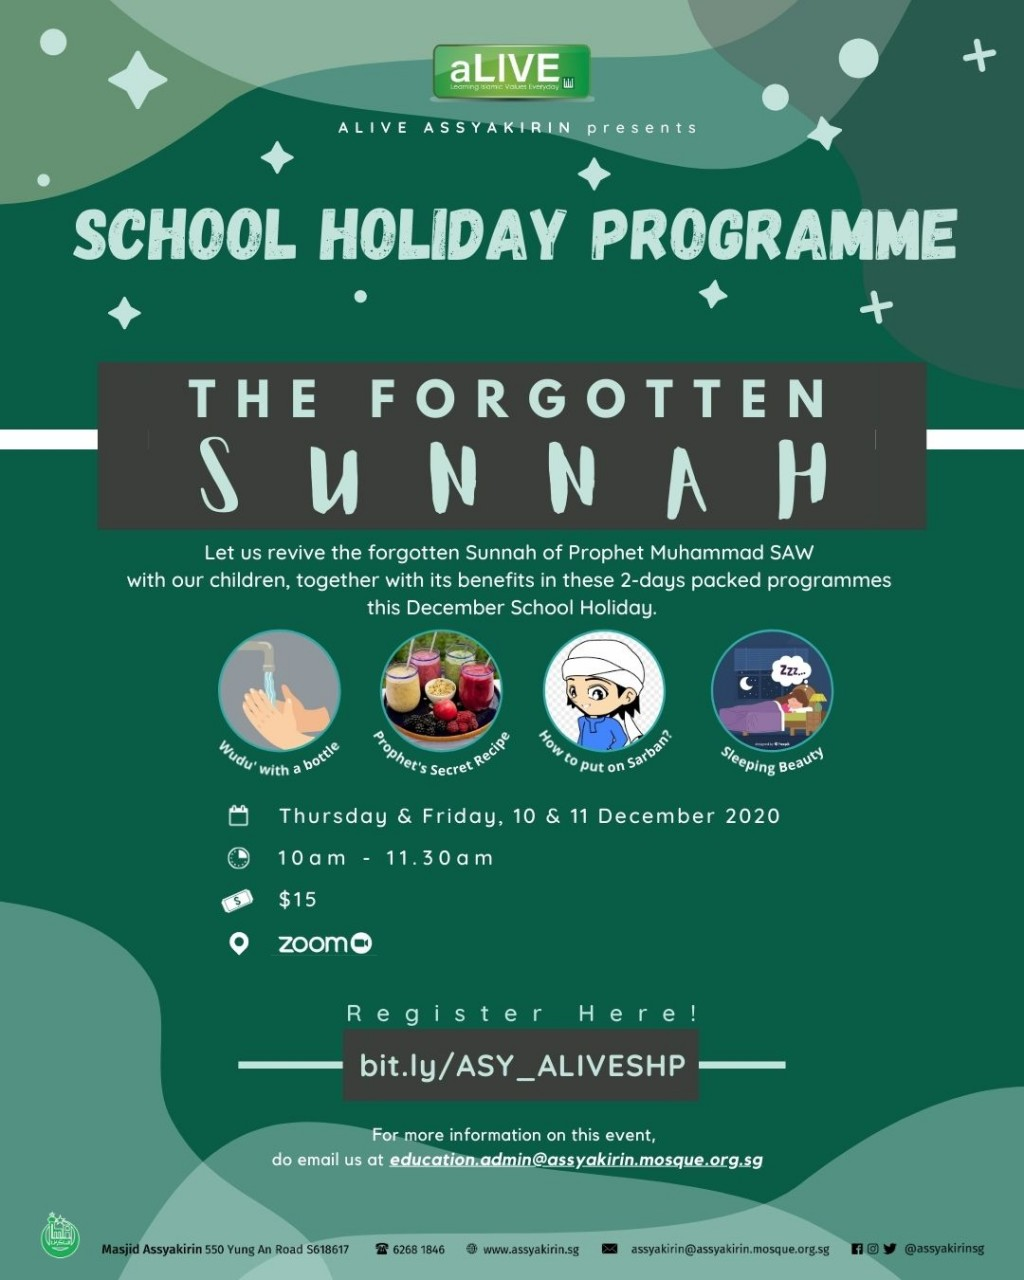 ALIVE SCHOOL HOLIDAY PROGRAMME